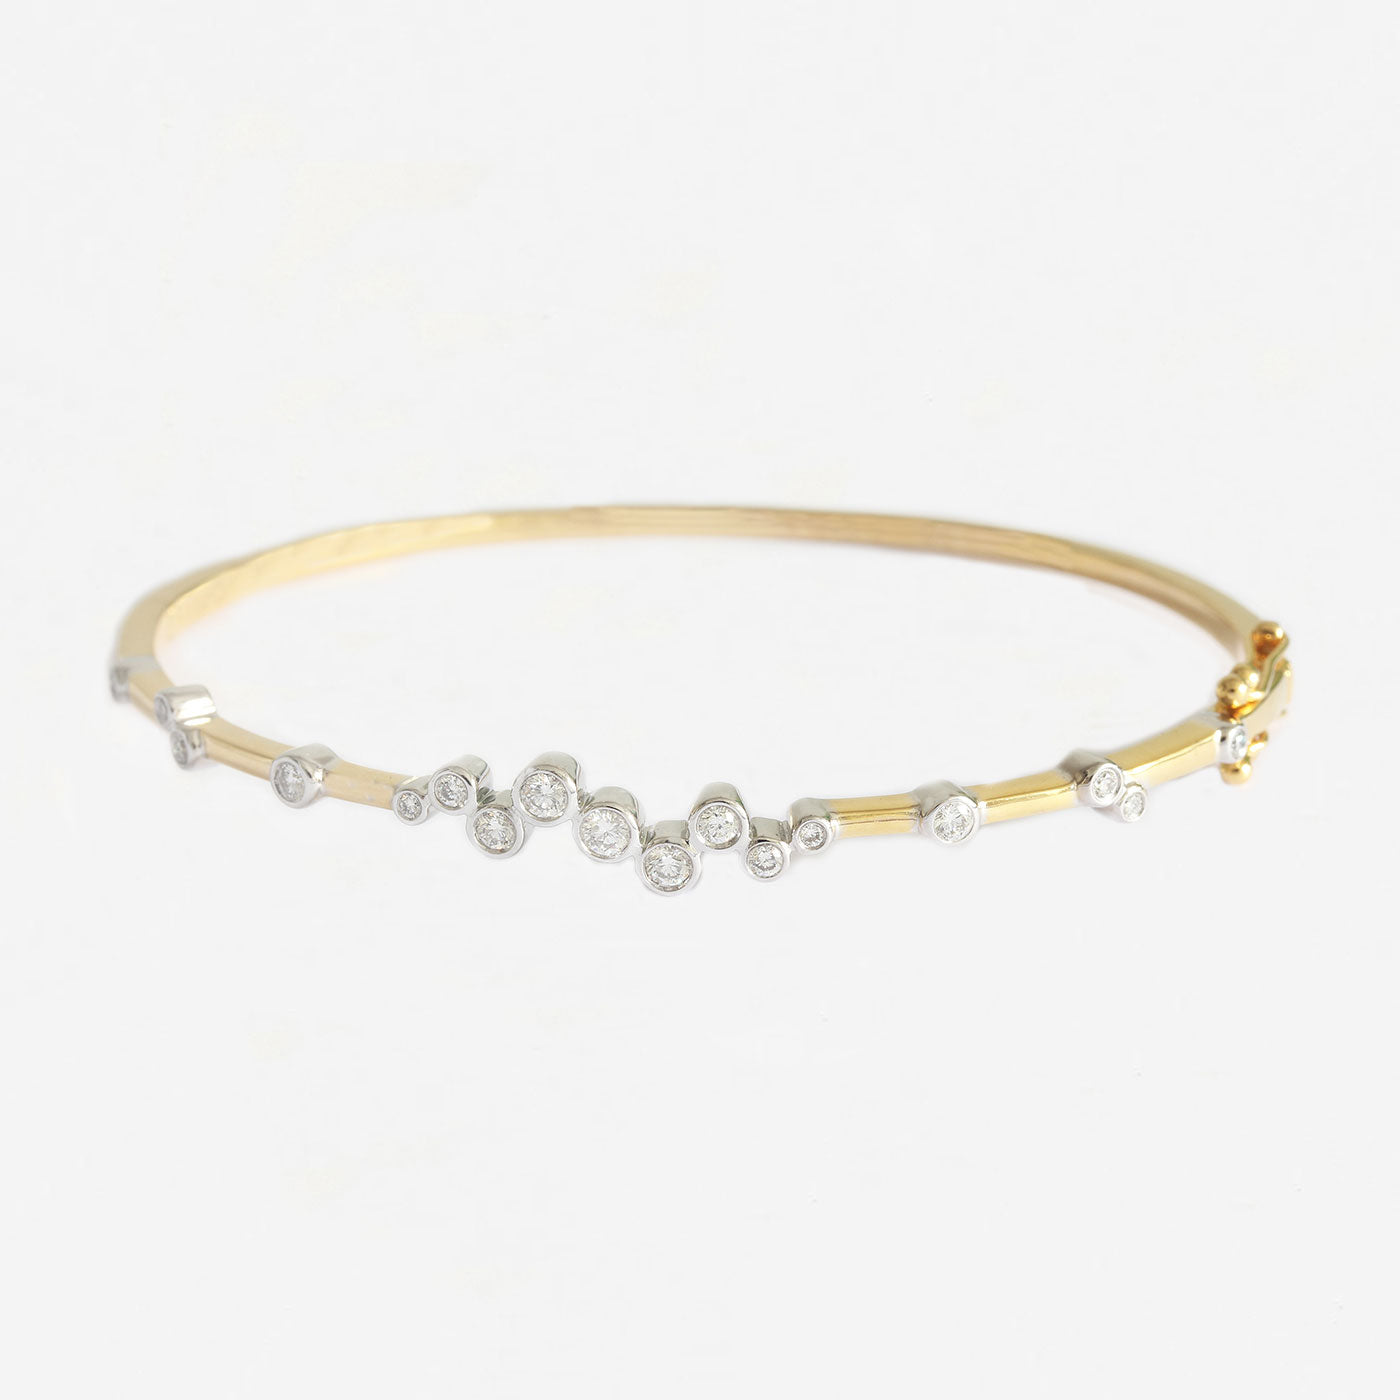 a contemporary diamond white and yellow gold hinged oval bangle